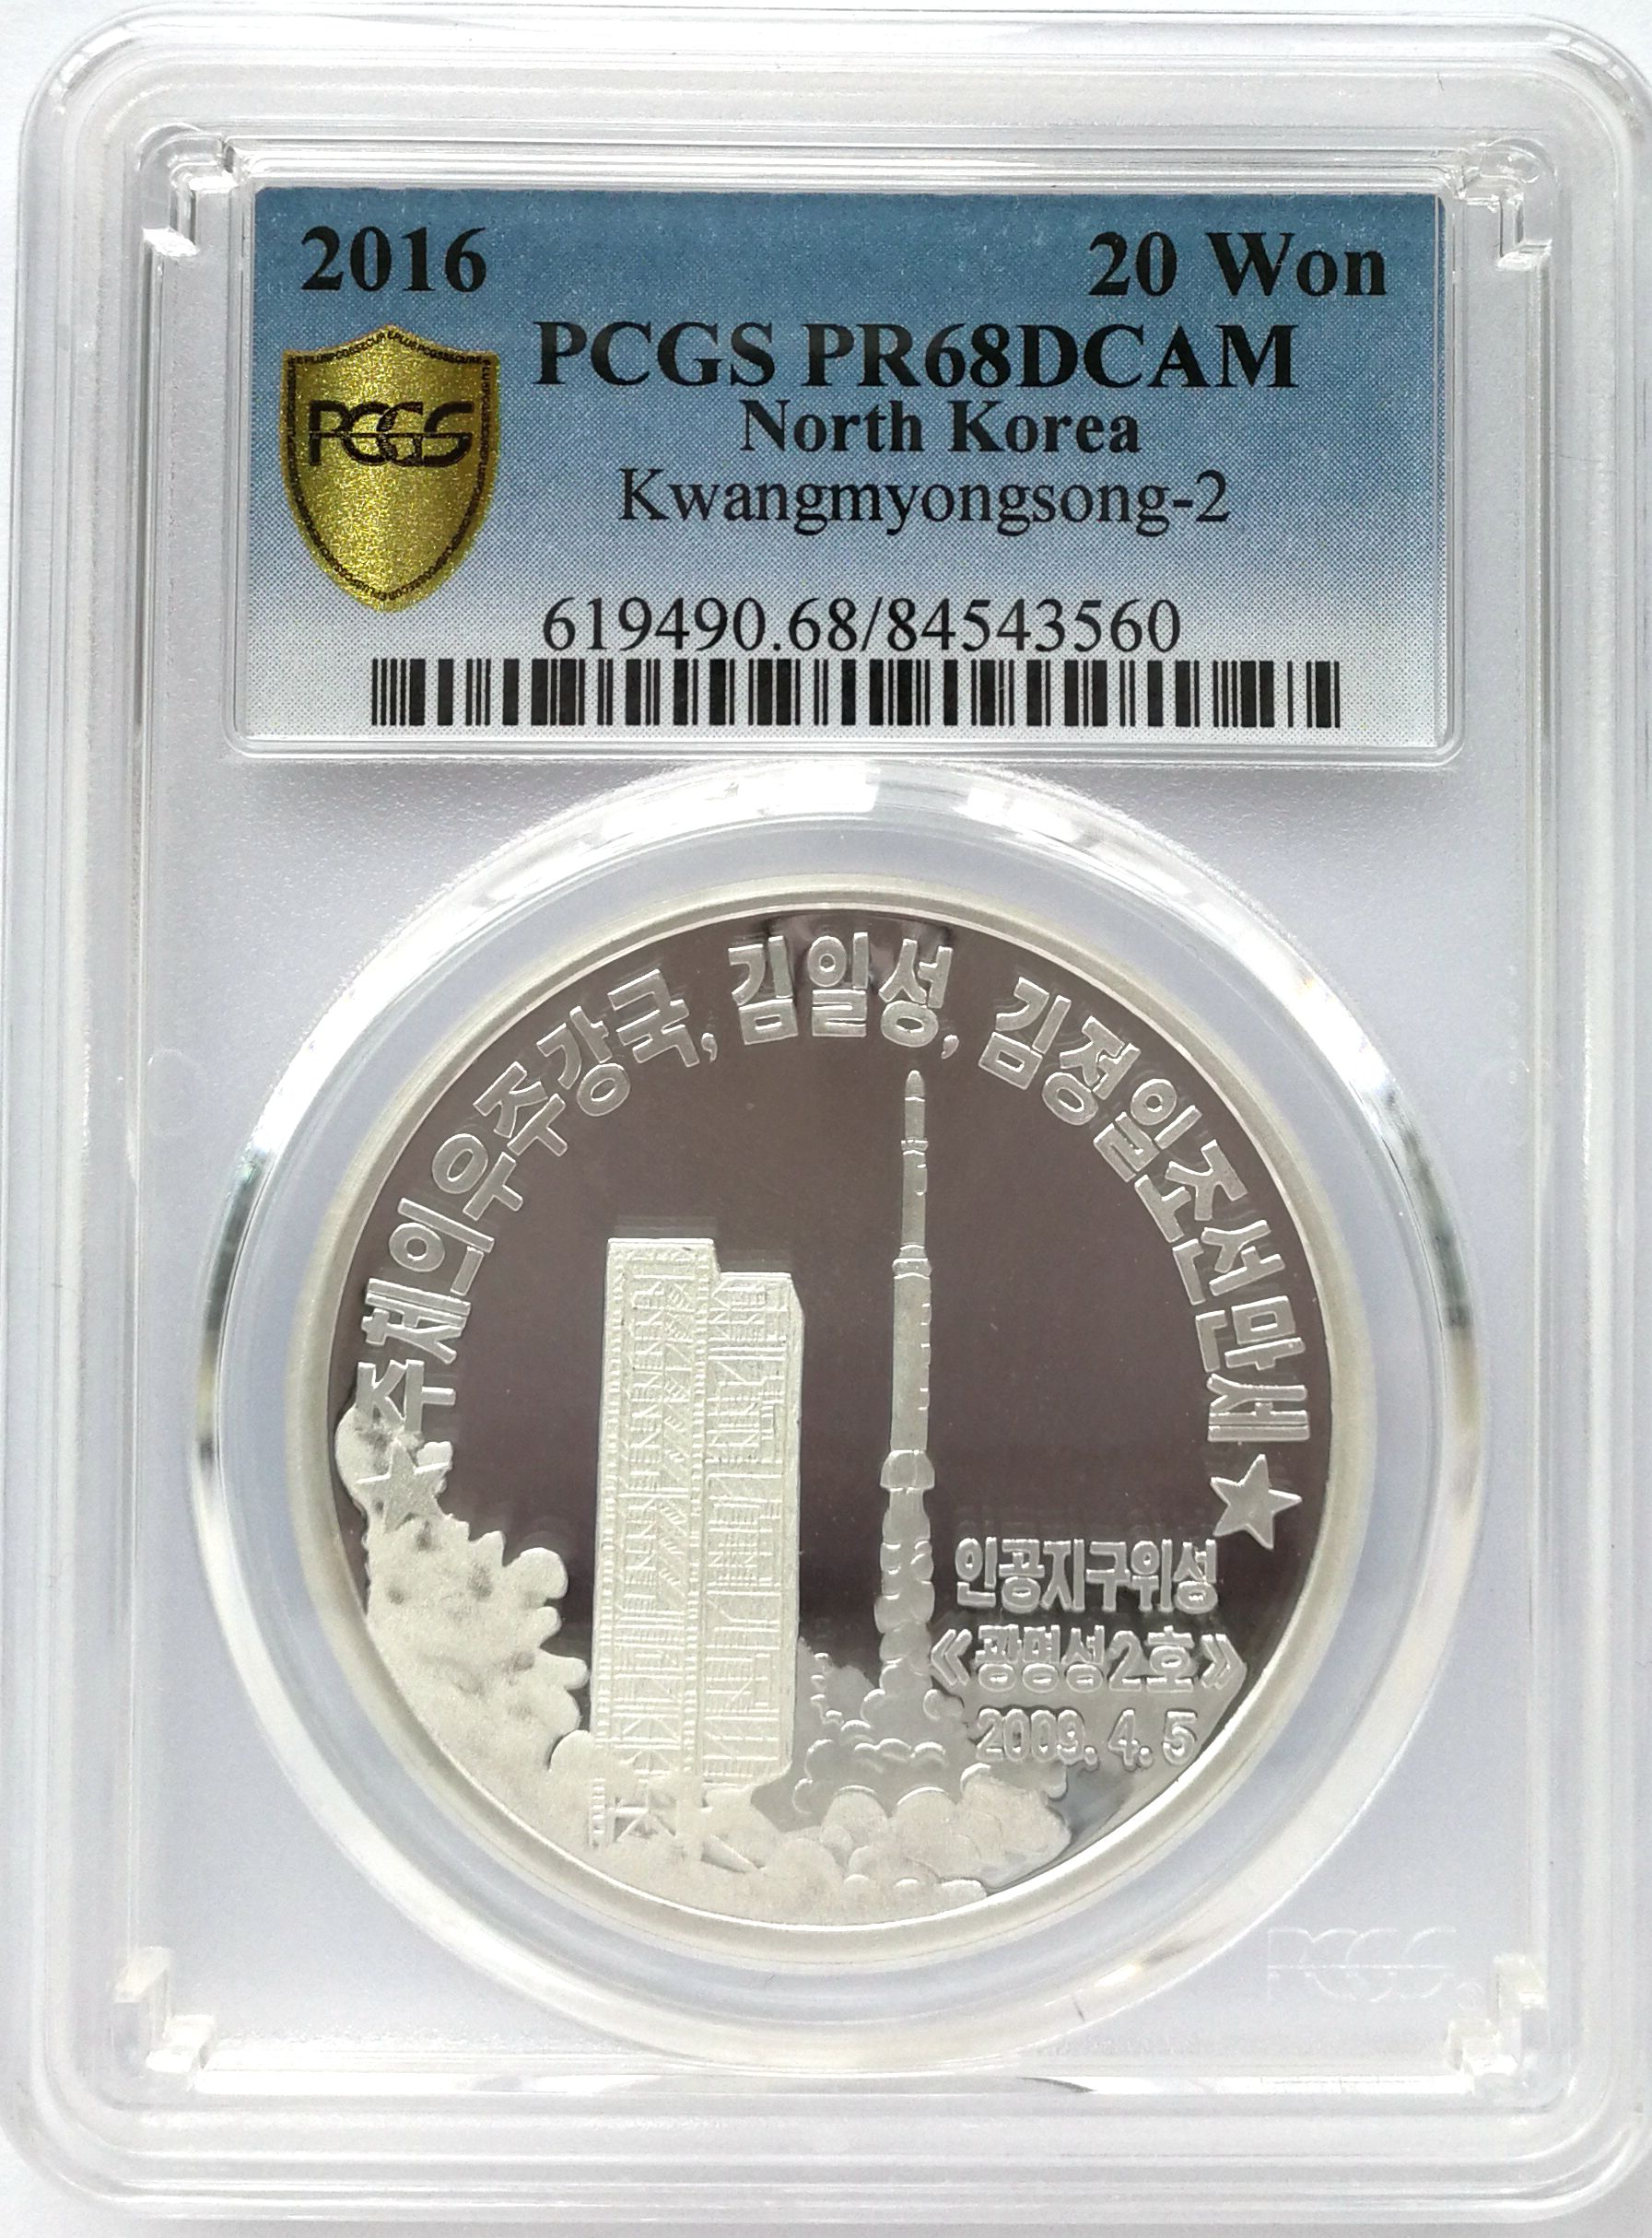 "L3453, Korea ""Kwangmyongsong-2 Rocket"" Proof Silver Coin. 2016, Korean Grade"